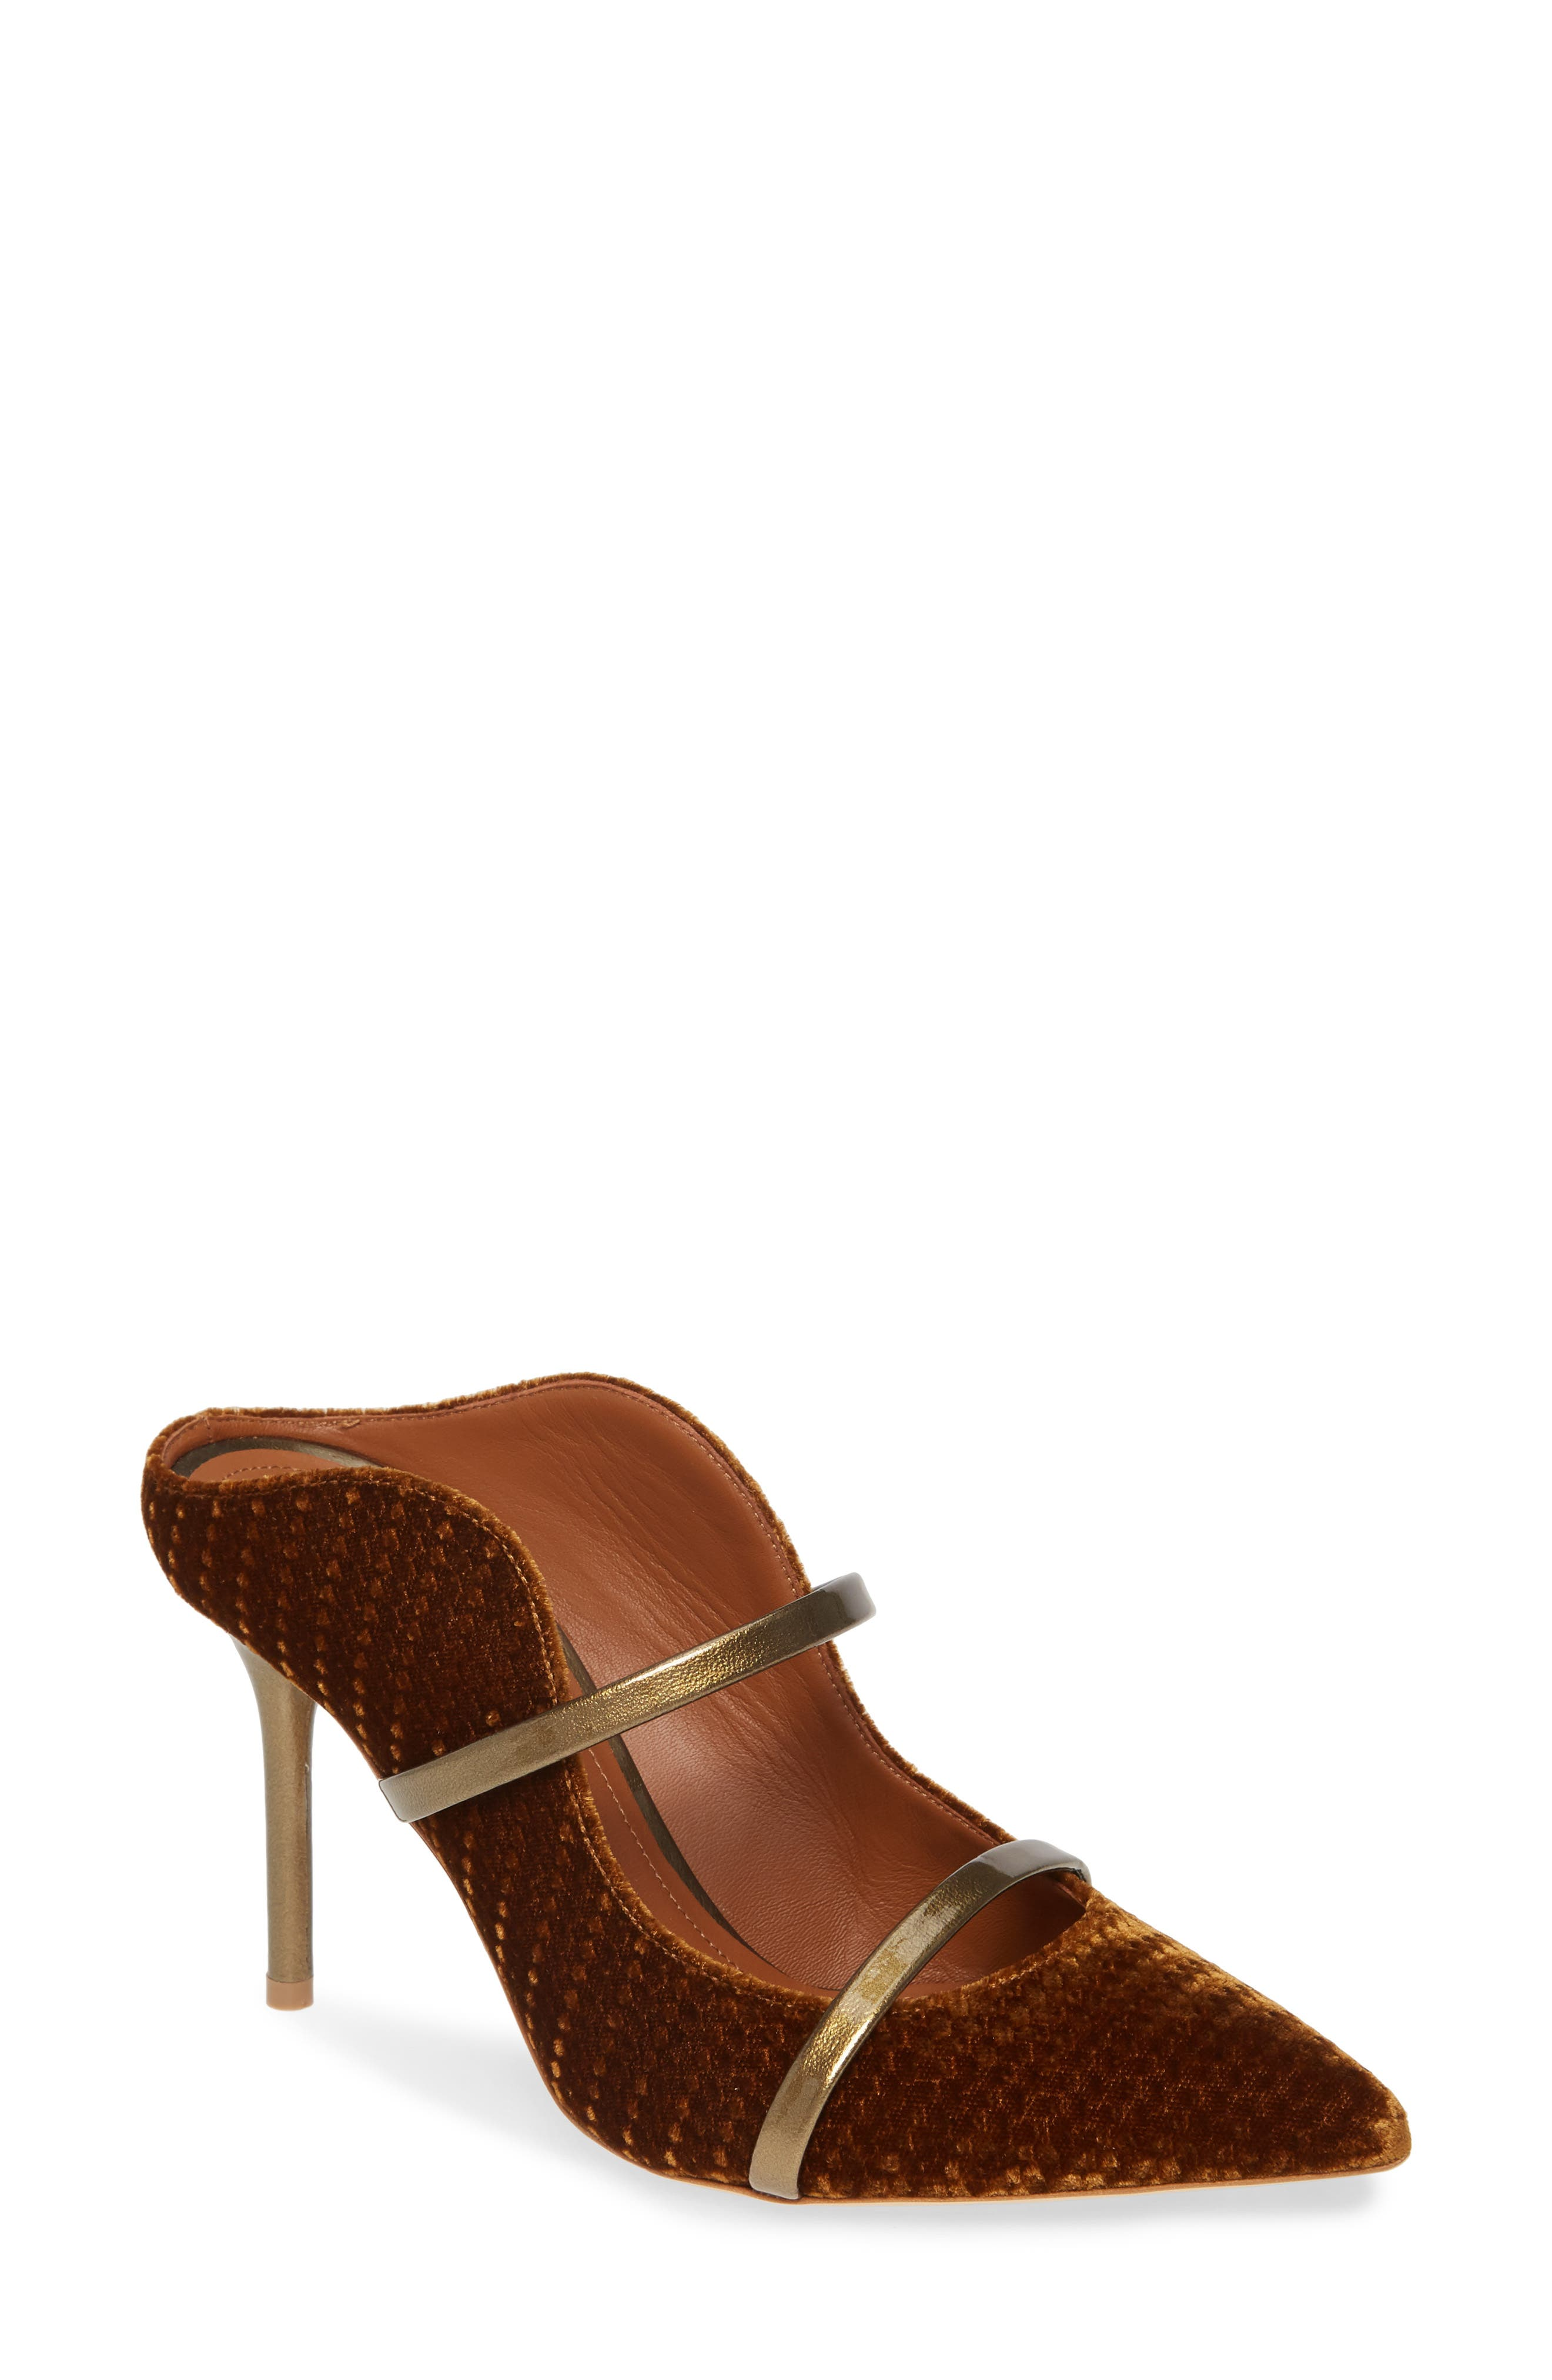 Malone Souliers Maureen Double Band Mule - Brown